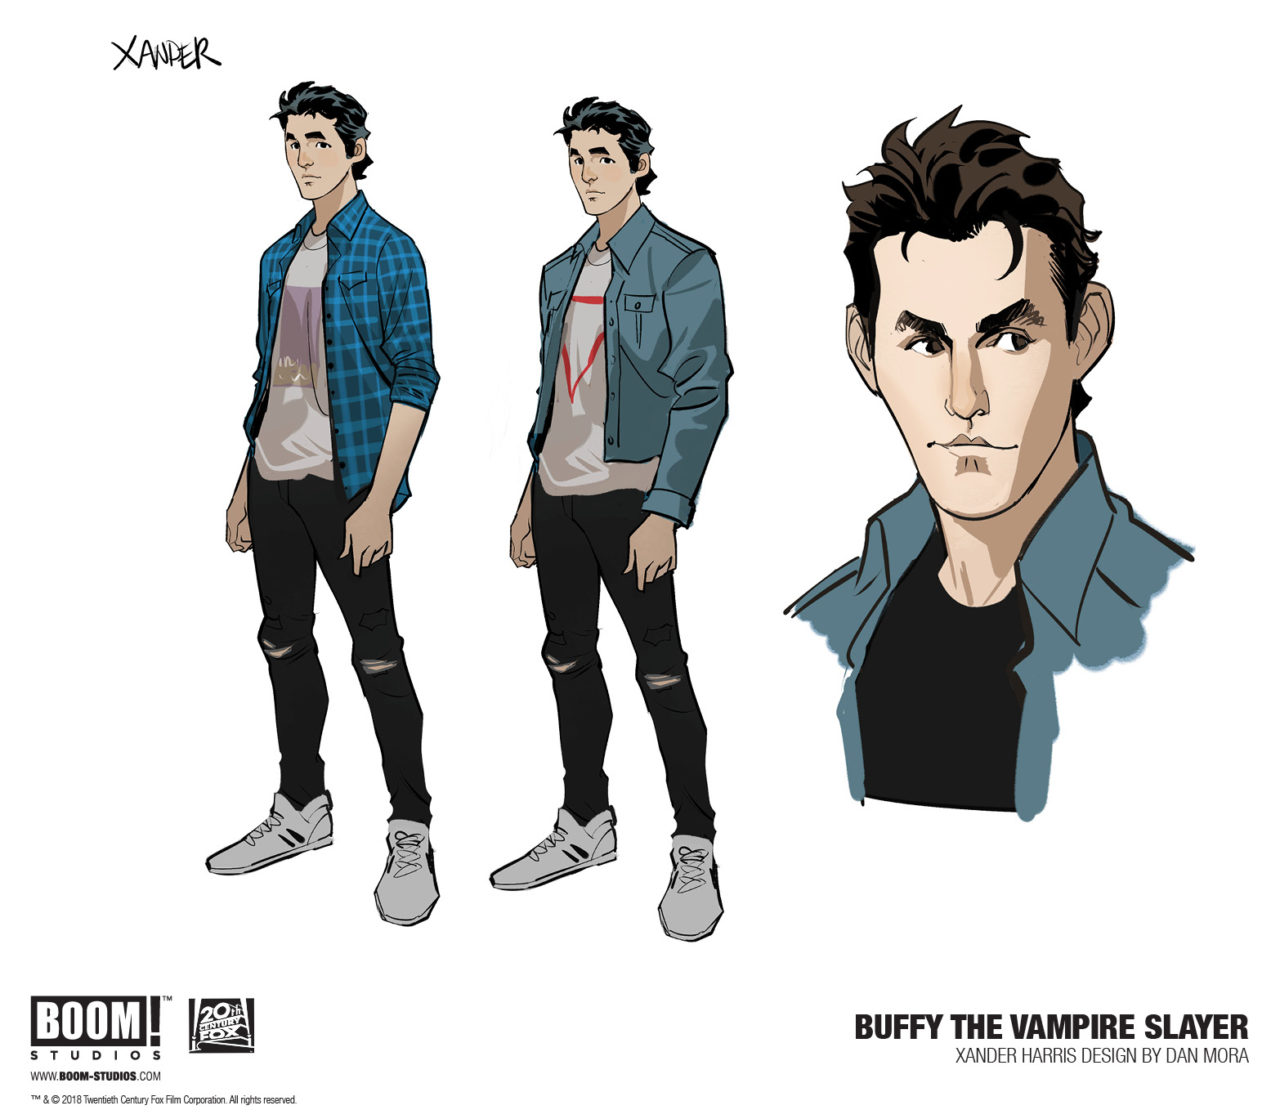 BOOM! Buffy the Vampire Slayer 1, Jordie Bellaire, Dan Mora, Raul Angula, Ed DUkeshire, 2019 - Character sketches for Xander, wearing ripped black skinnies and a t-shirt with a plaid overshirt and green jacket styled over it